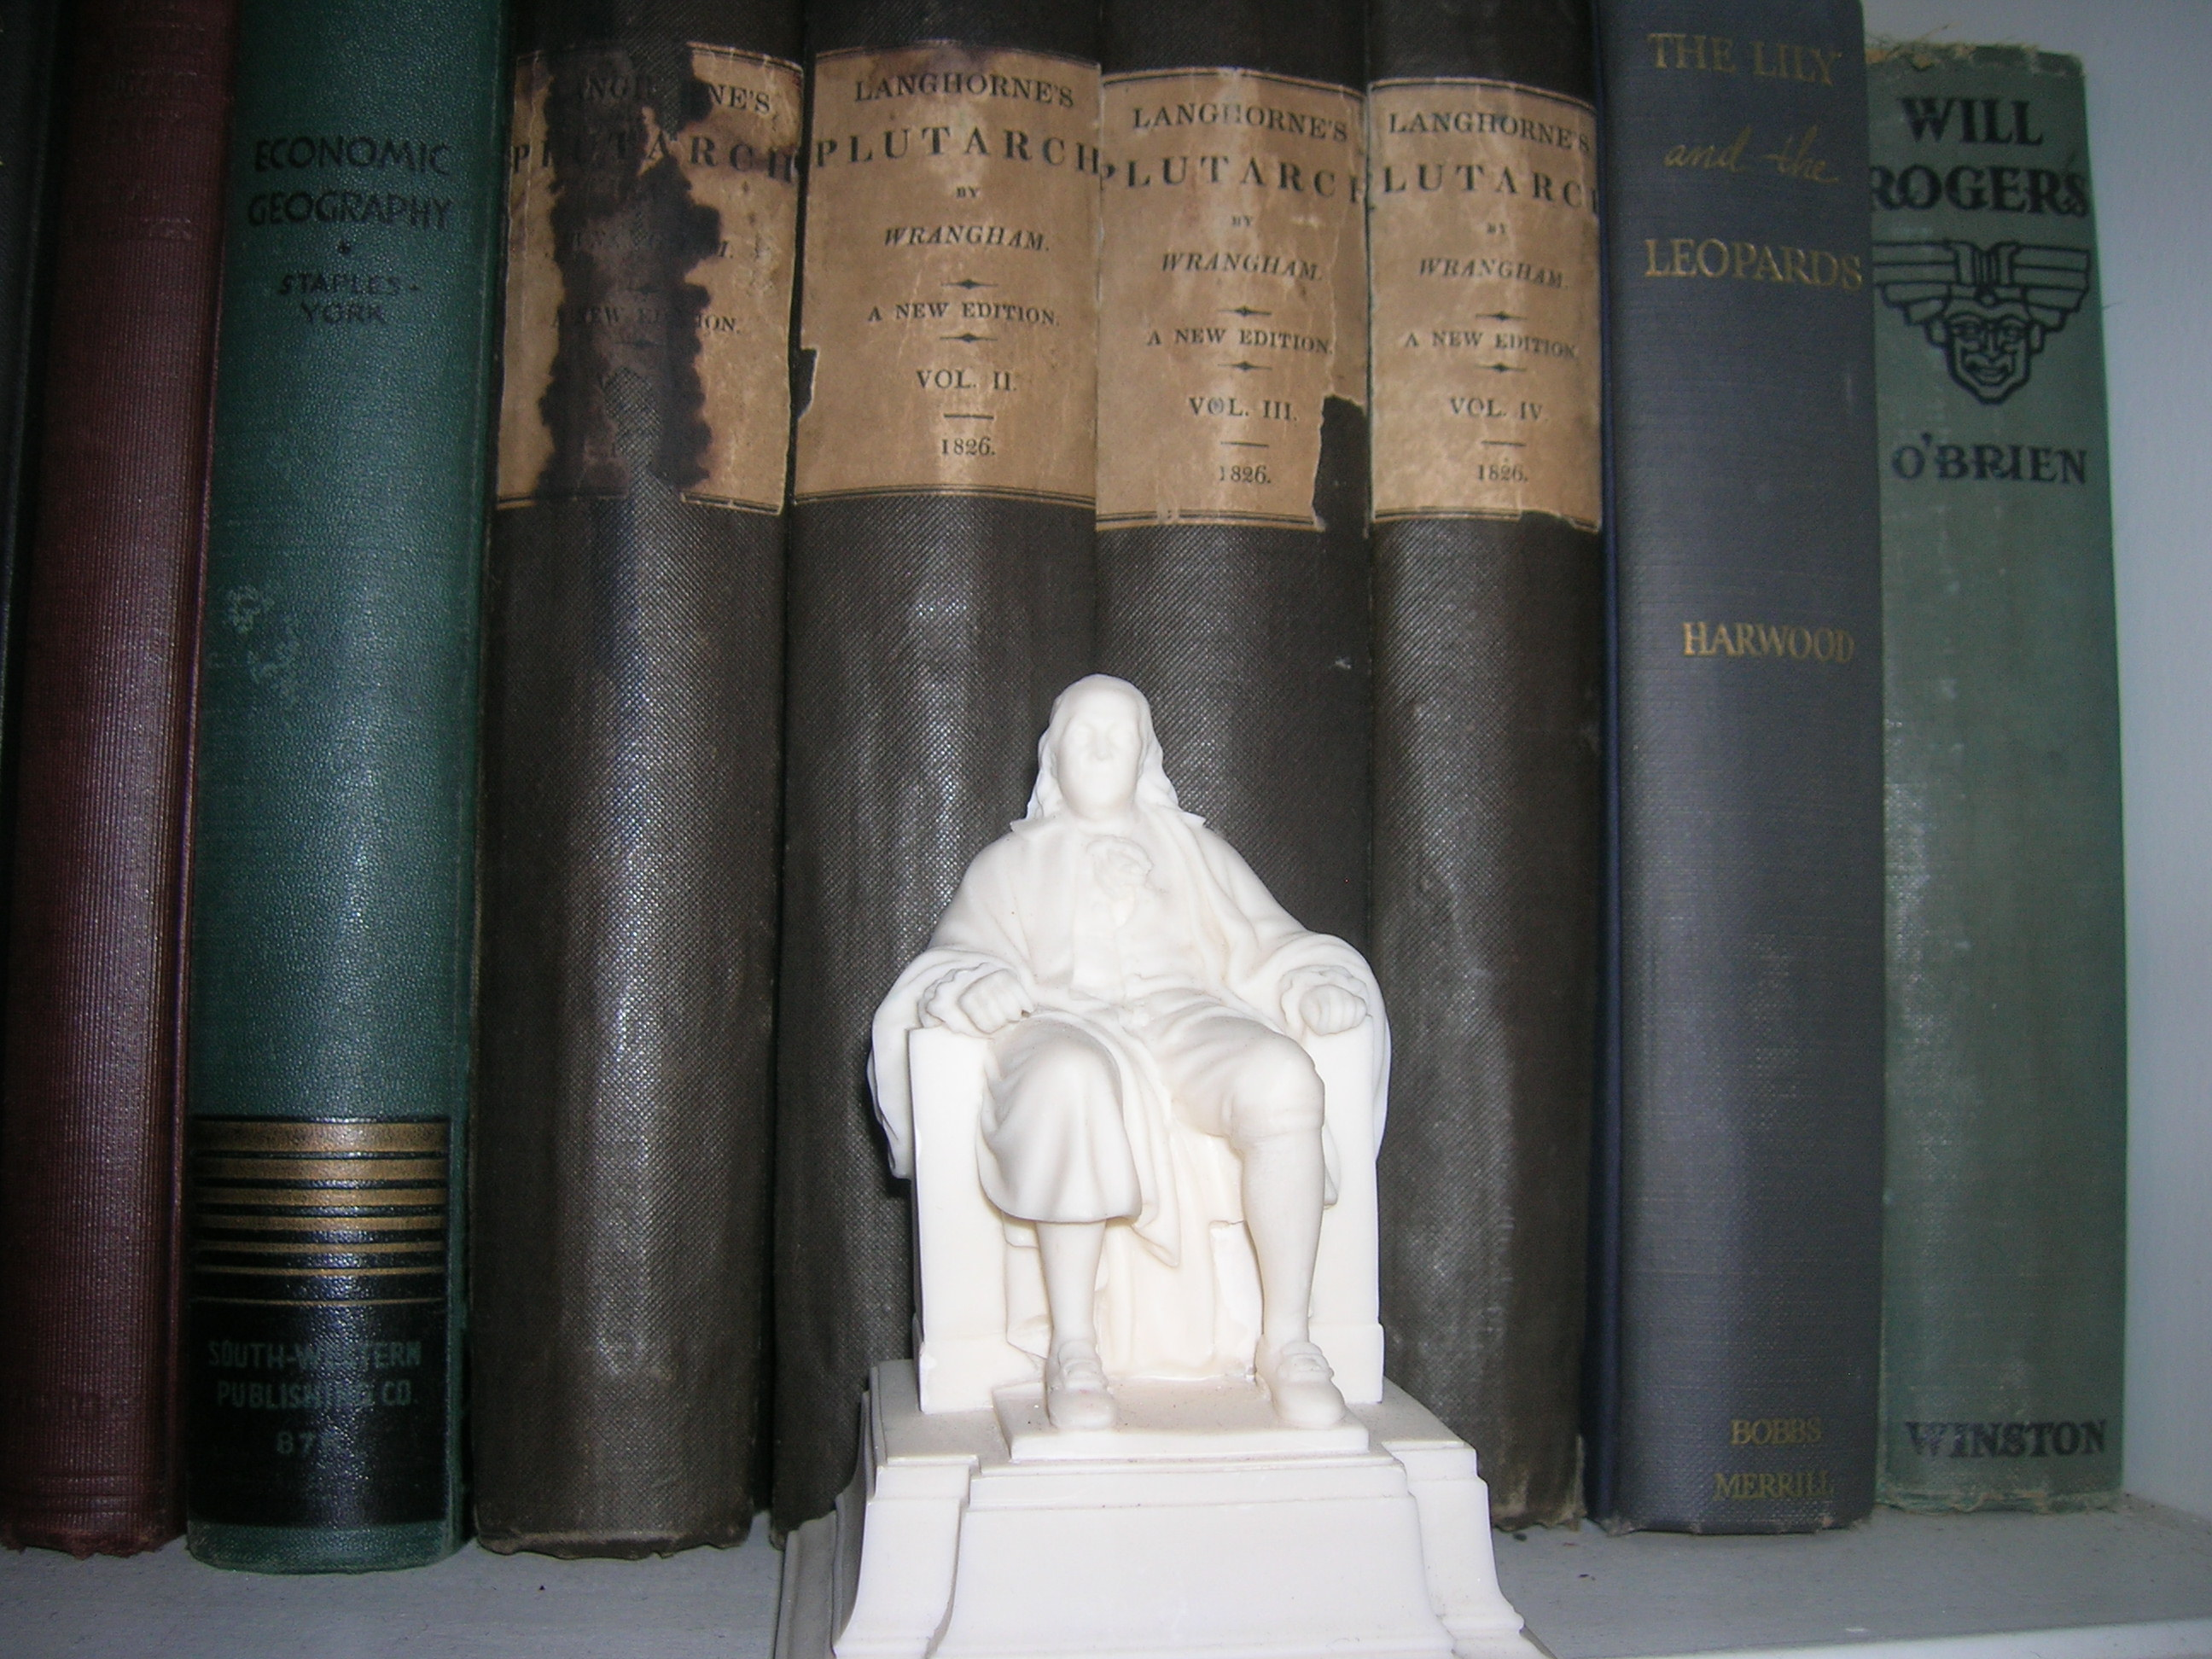 Ben Franklin with Will Rogers book in background, both were Masons